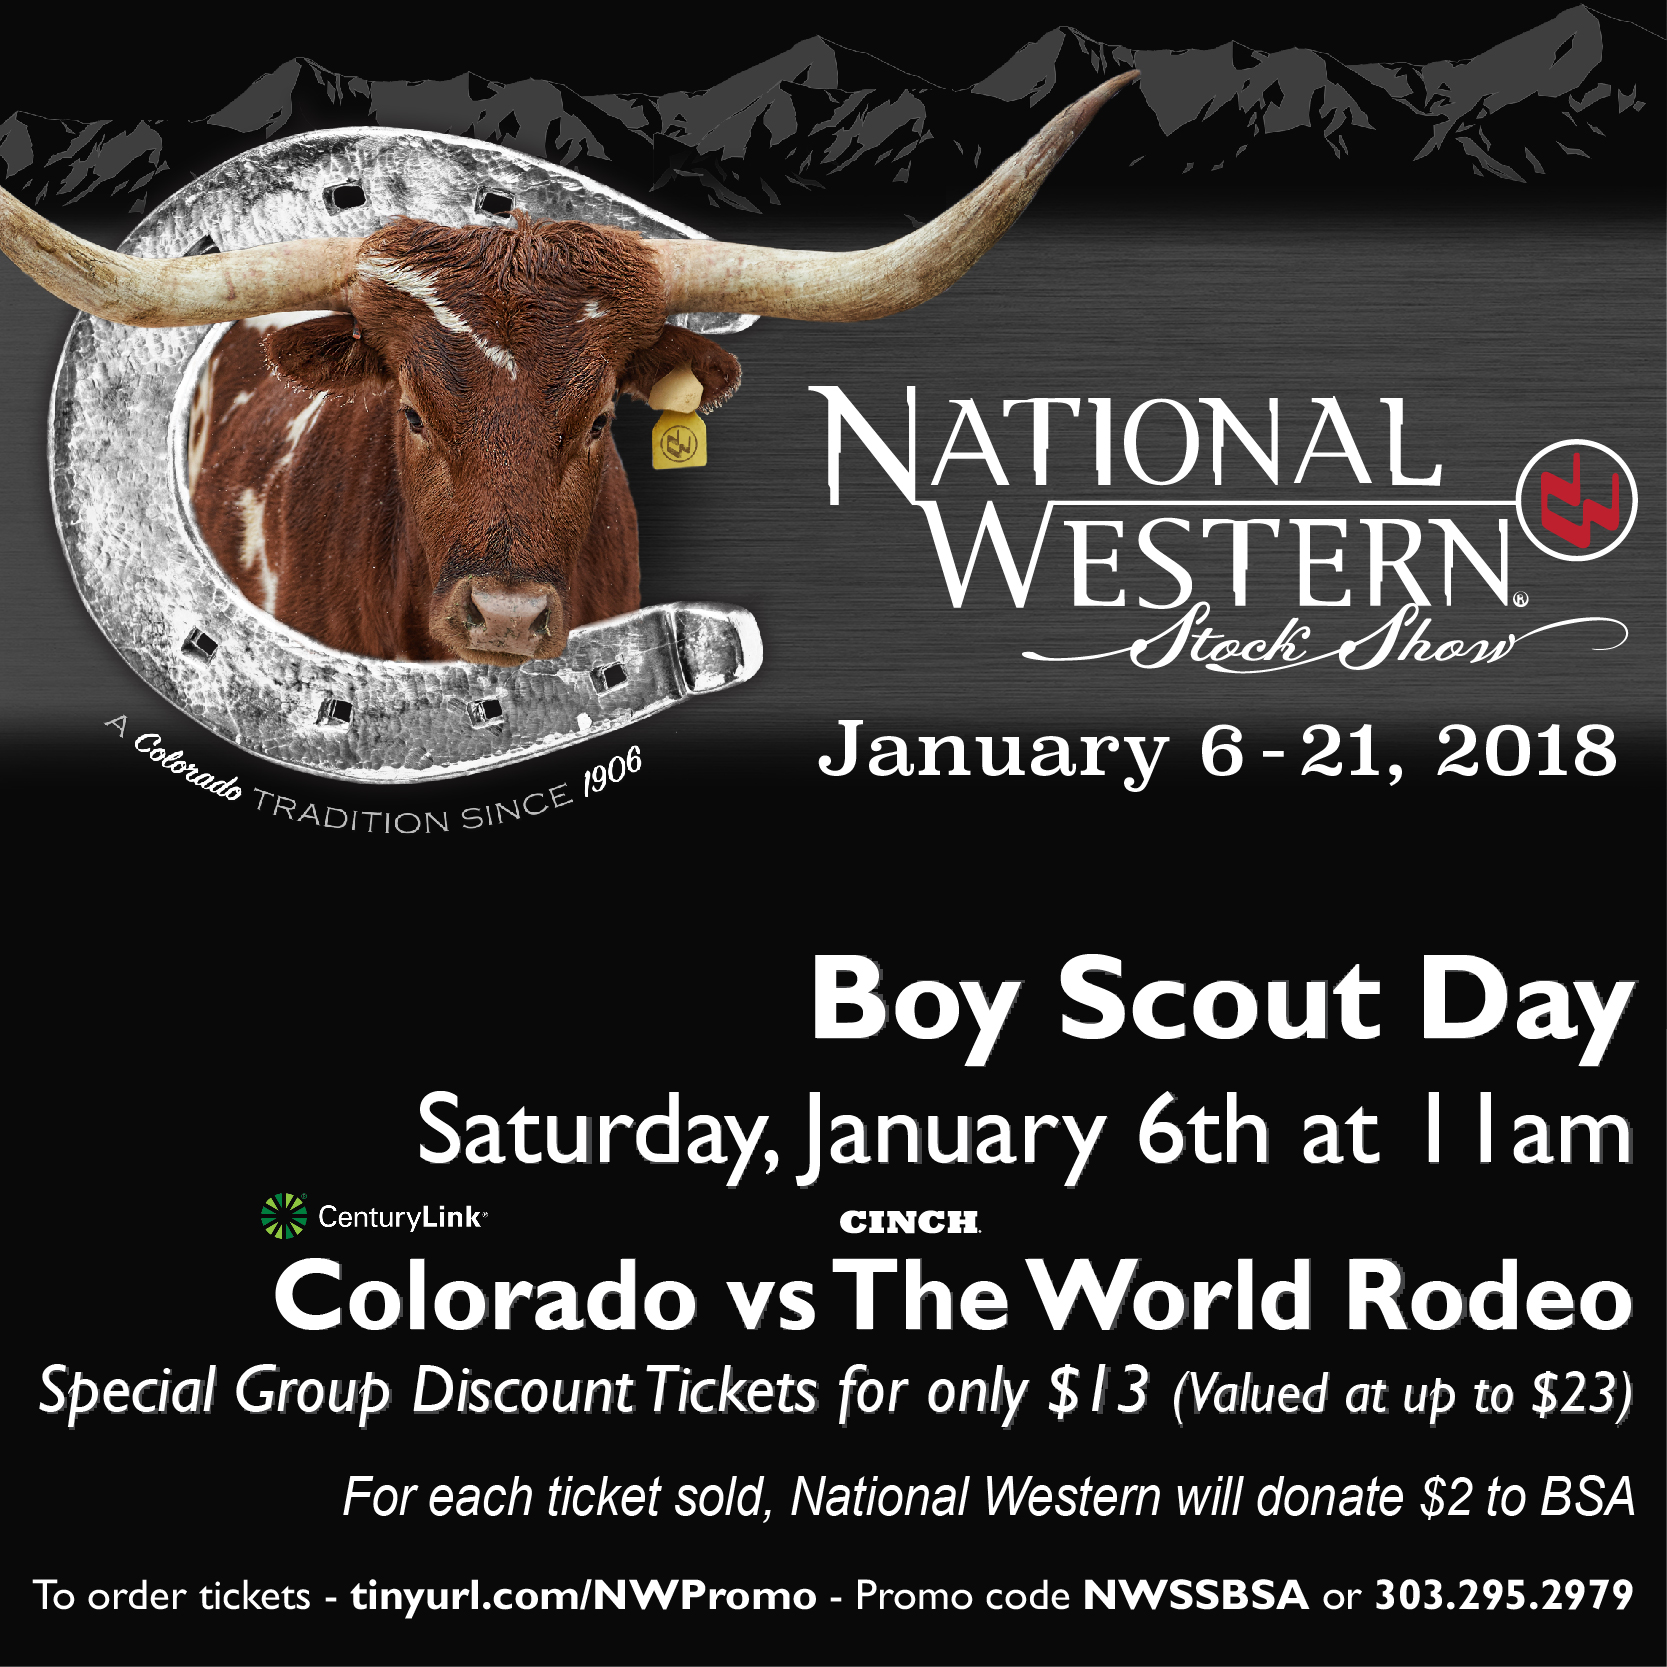 2018%20nwss%20boy%20scout%20day%20600x600.jpg